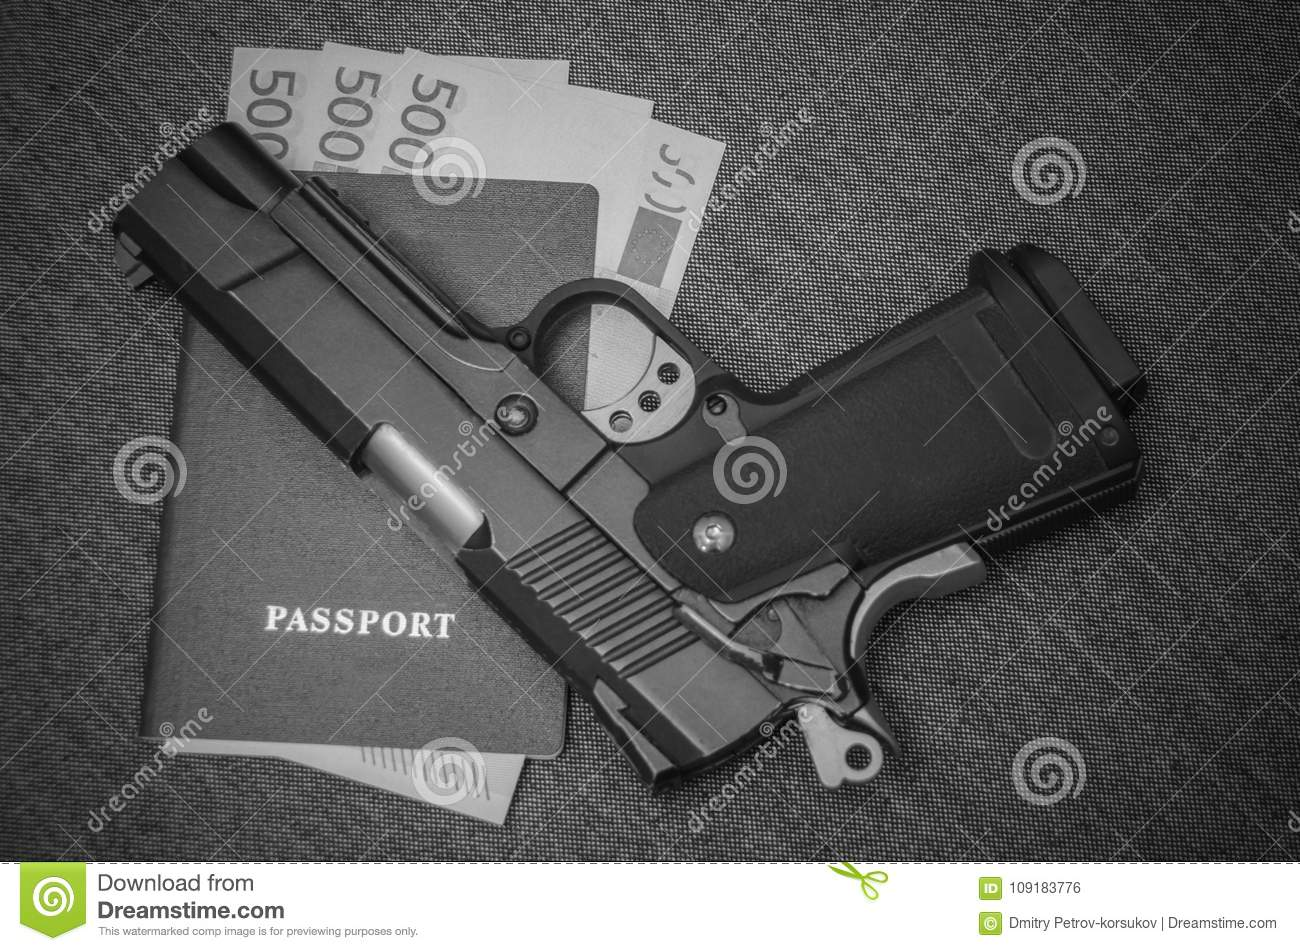 Next To The Pistol Euros Money Invested In The Passport Stock Photo